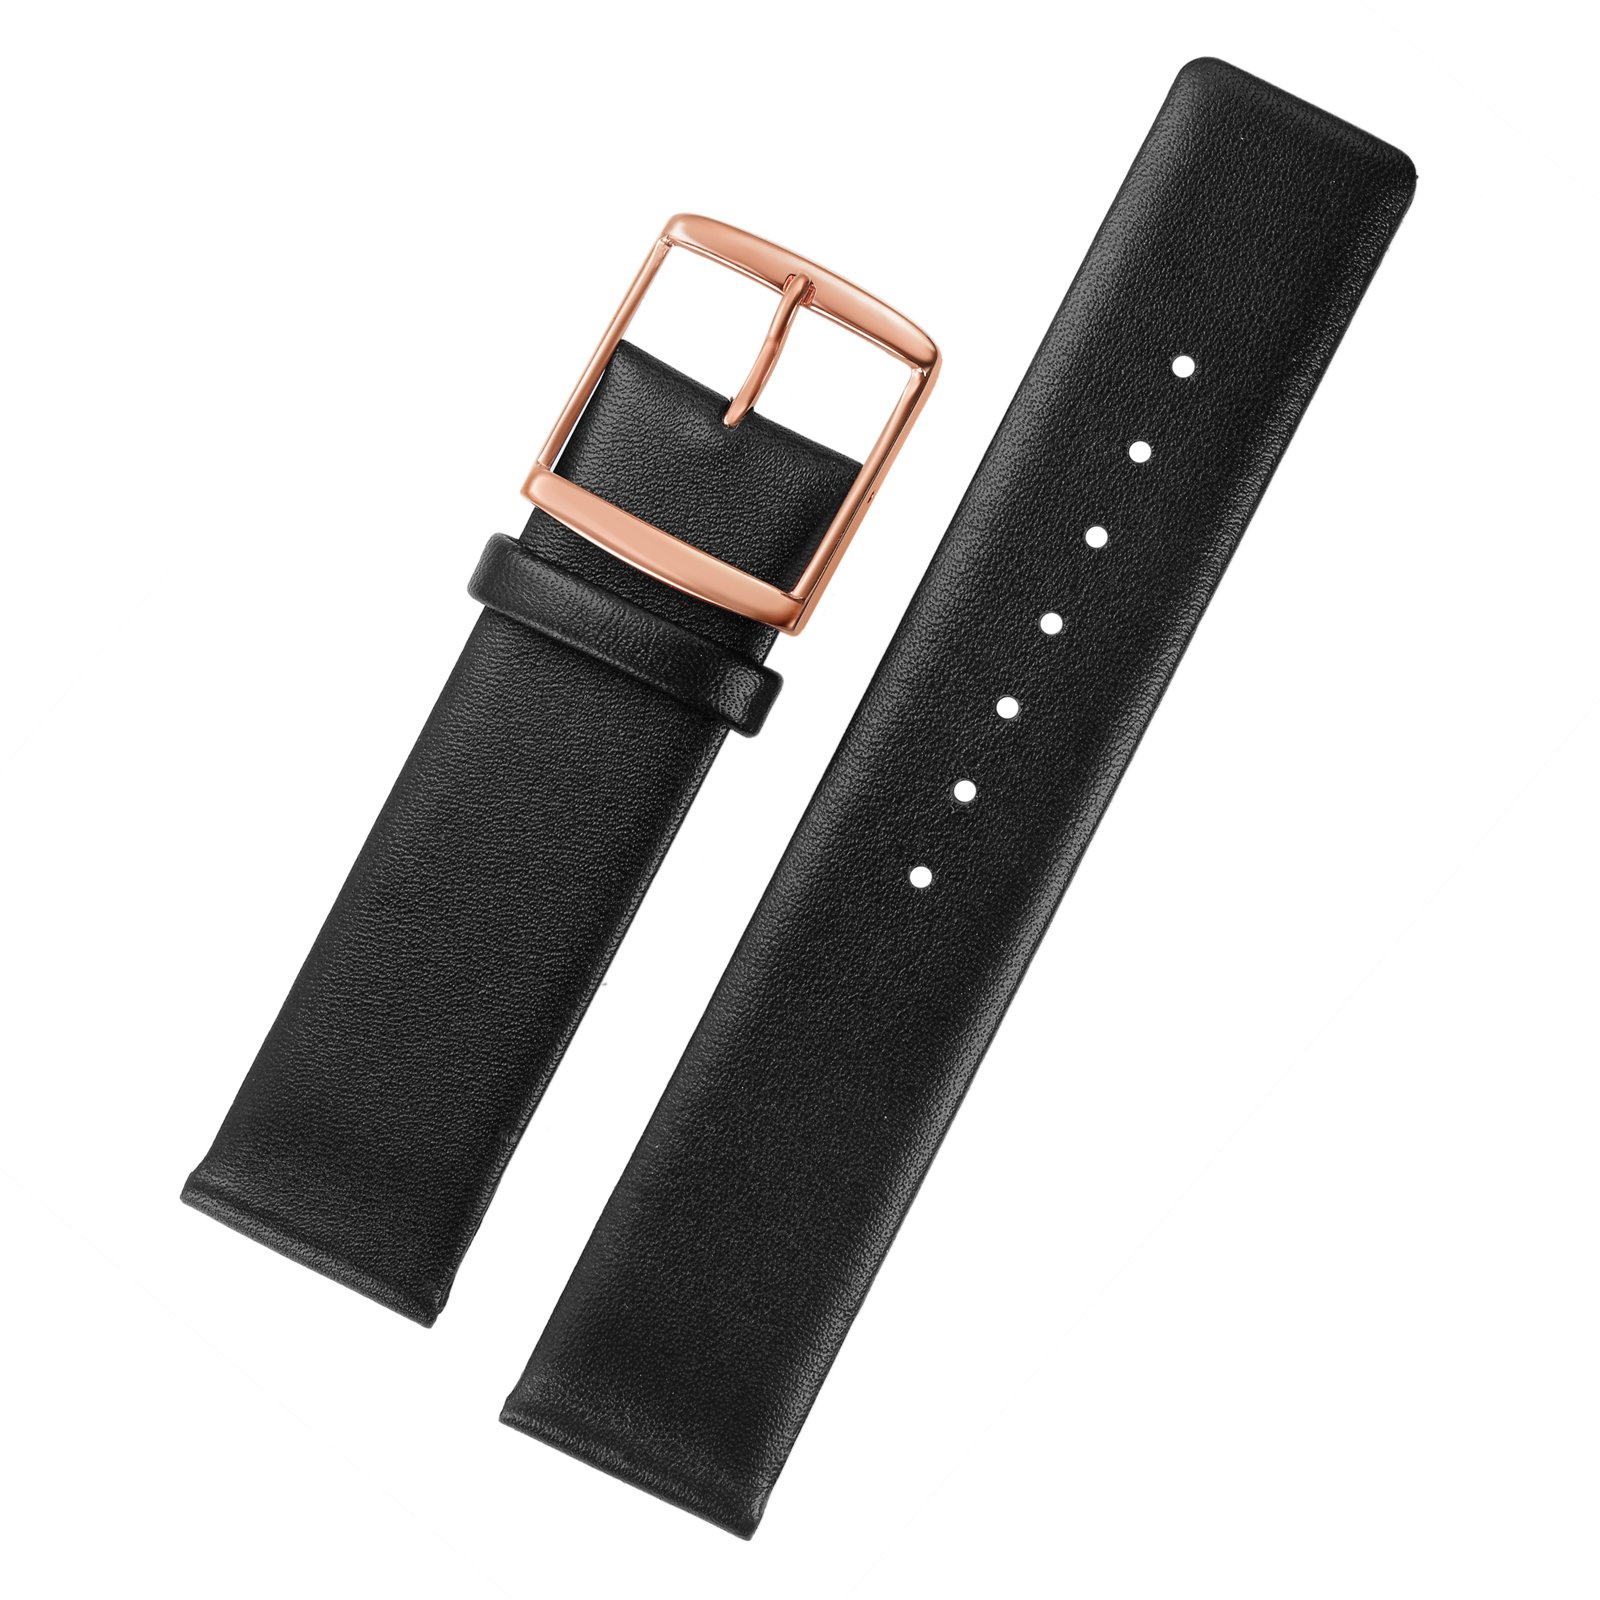 16mm Black Leather Watch Bands Replacement Italian Cowhide Thin without Stitching Simple Design Rose Gold Buckle